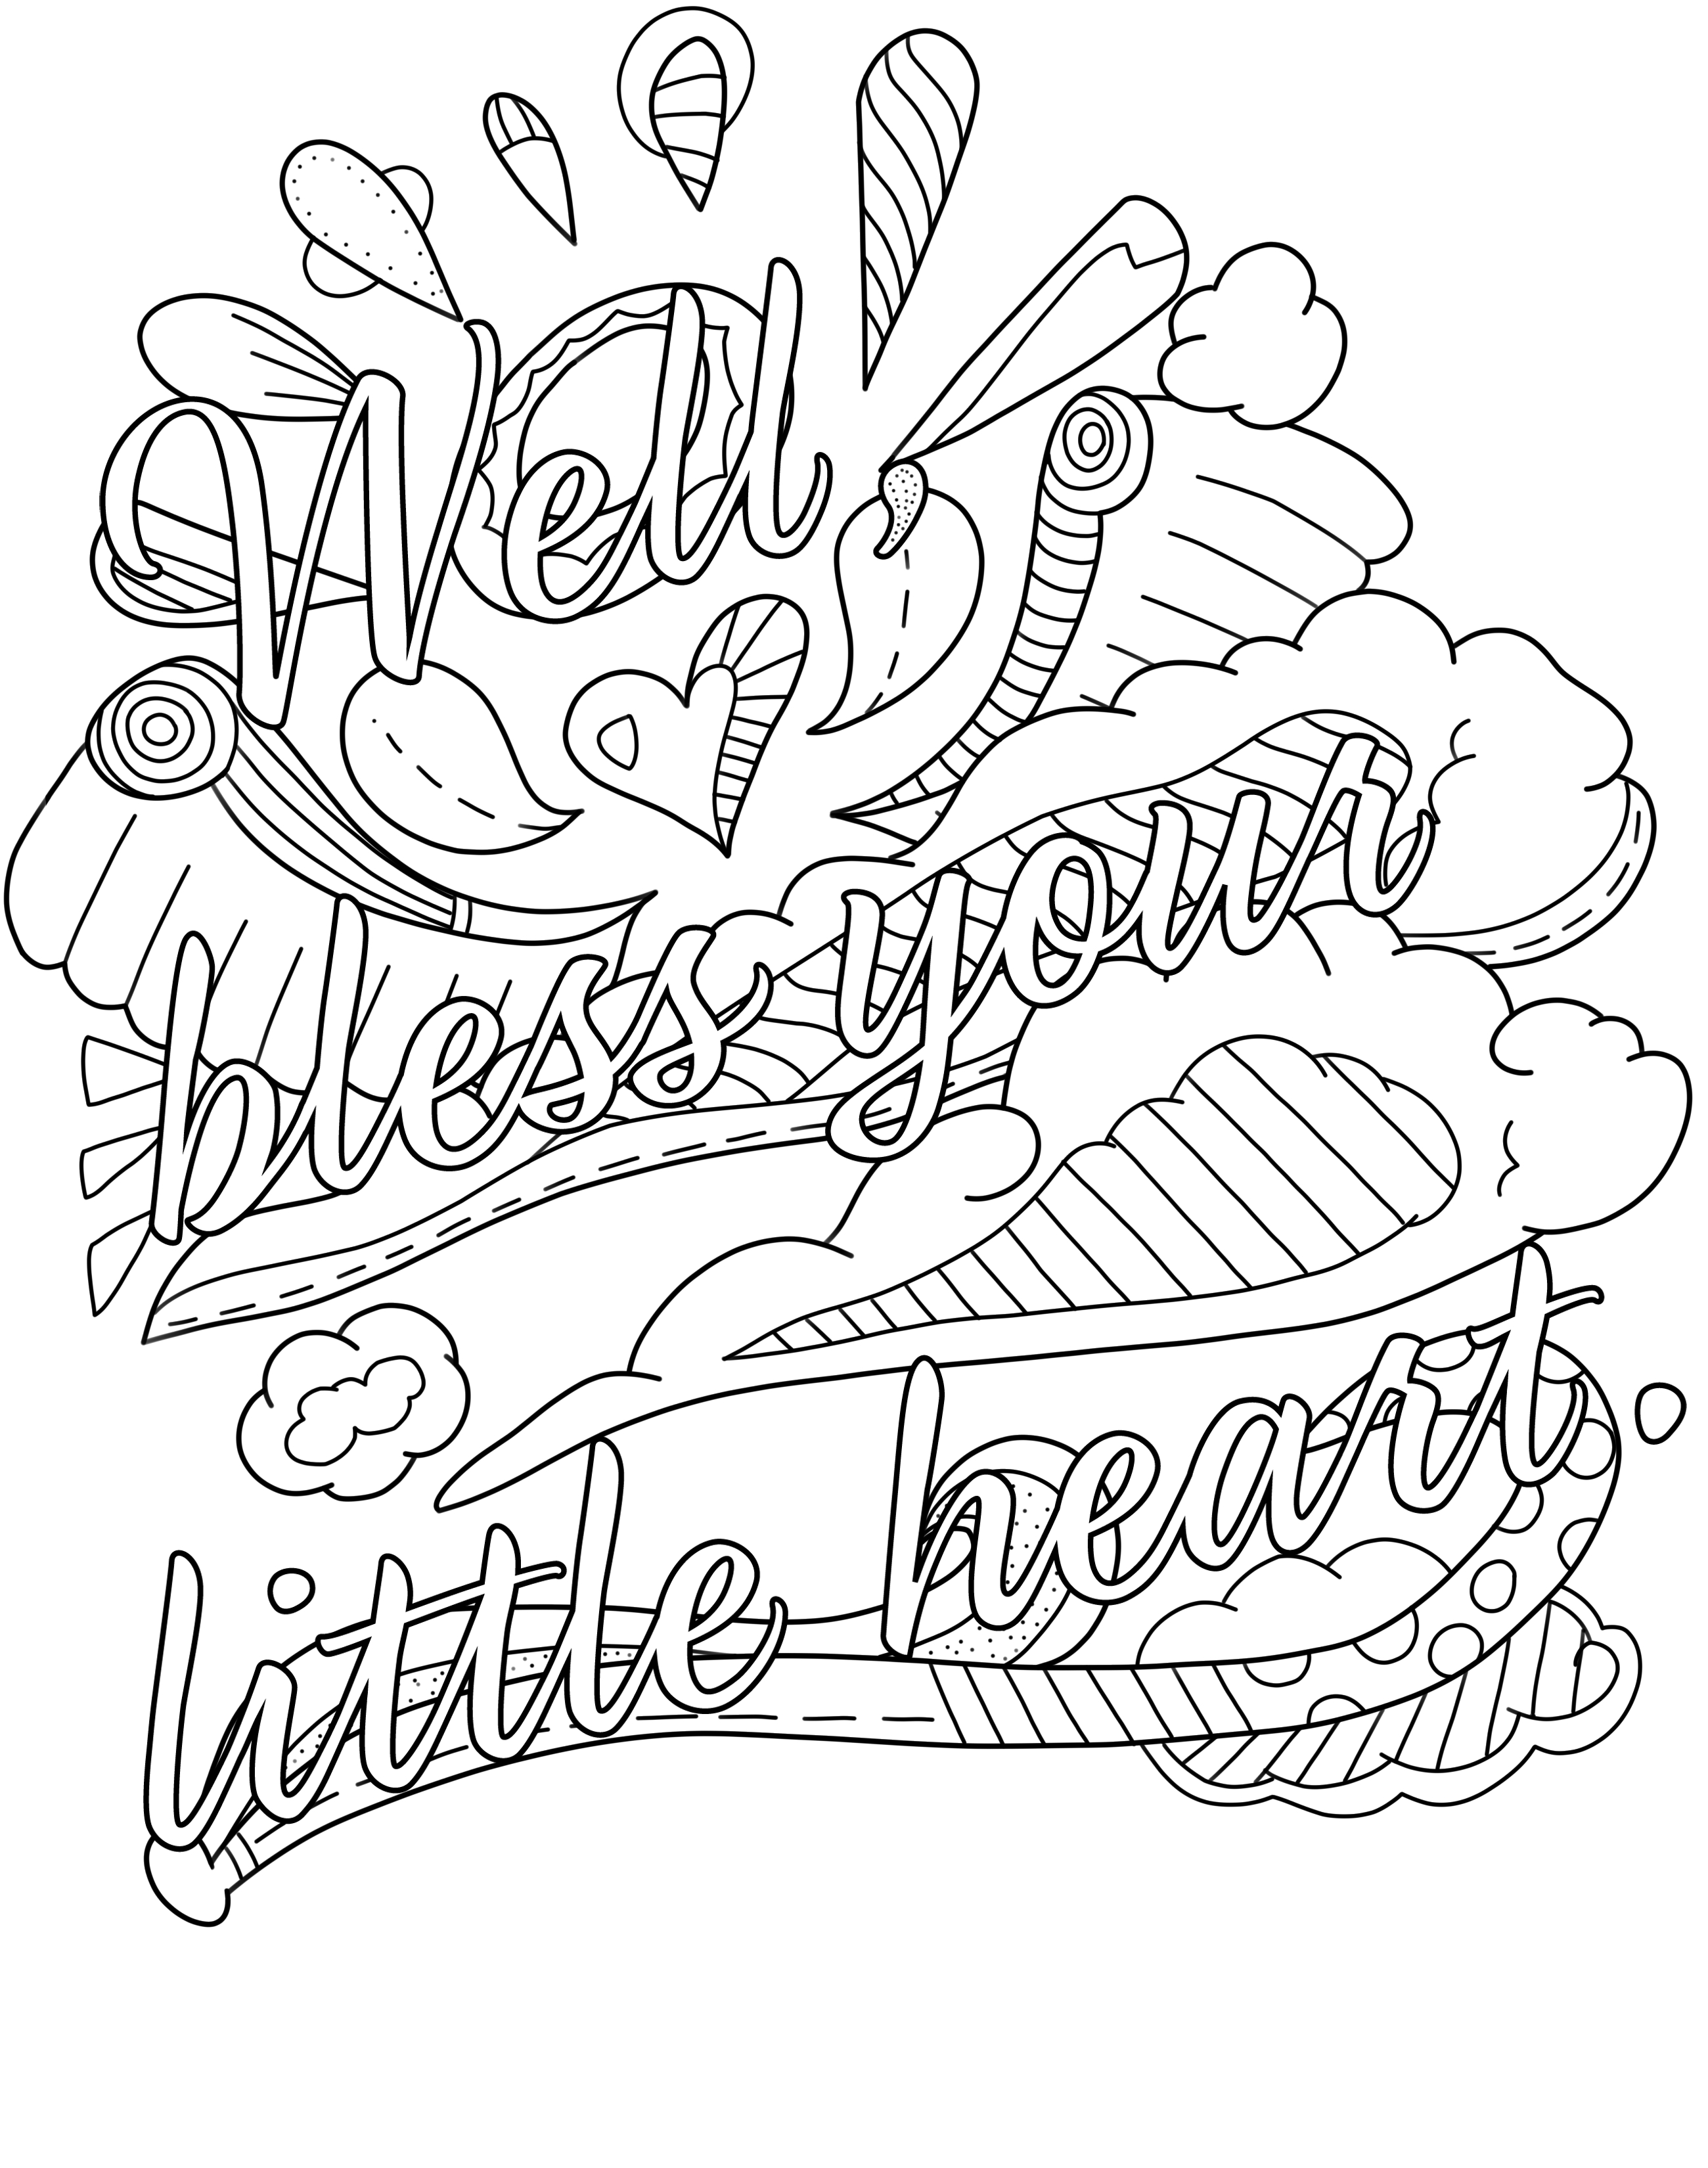 Free Swear Word Printable Page Archives - Thiago Ultra - Free Printable Swear Word Coloring Pages